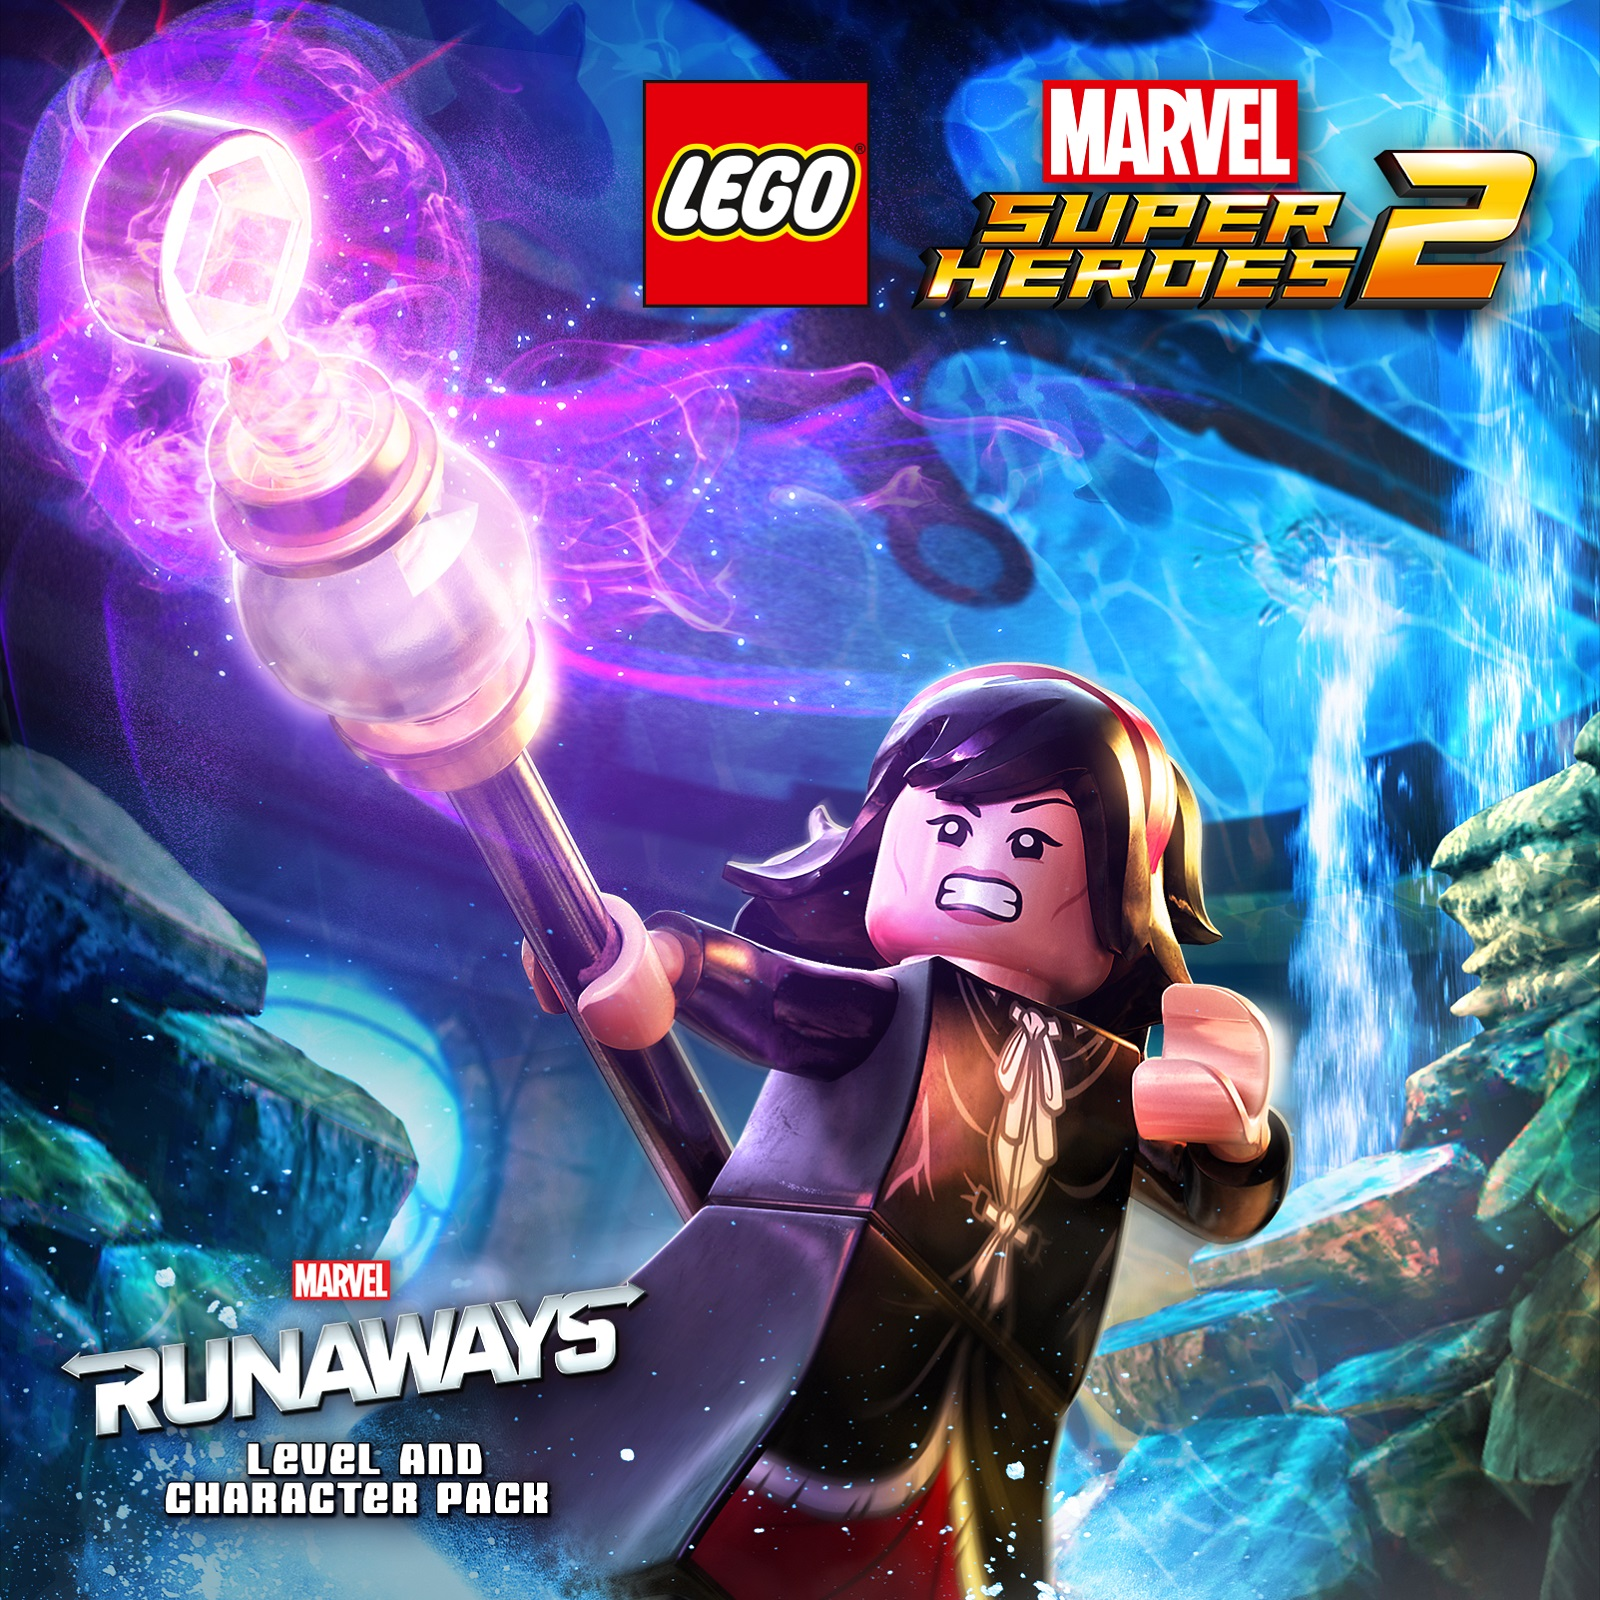 WBIE and TT Games Release LEGO Marvel Super Heroes 2